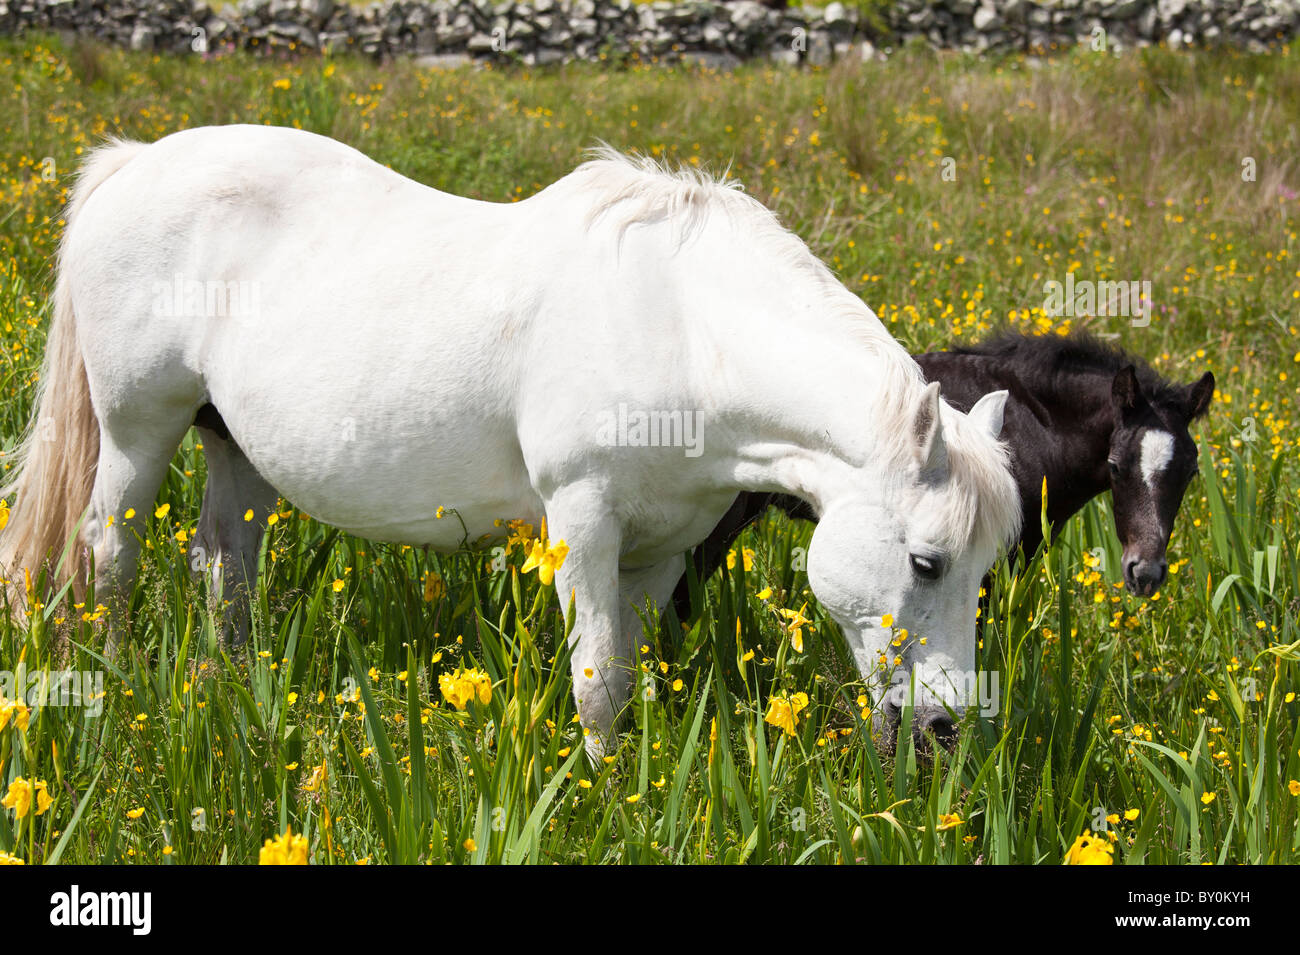 Connemara pony grey mare and foal in buttercup meadow, Connemara, County Galway, Ireland Stock Photo